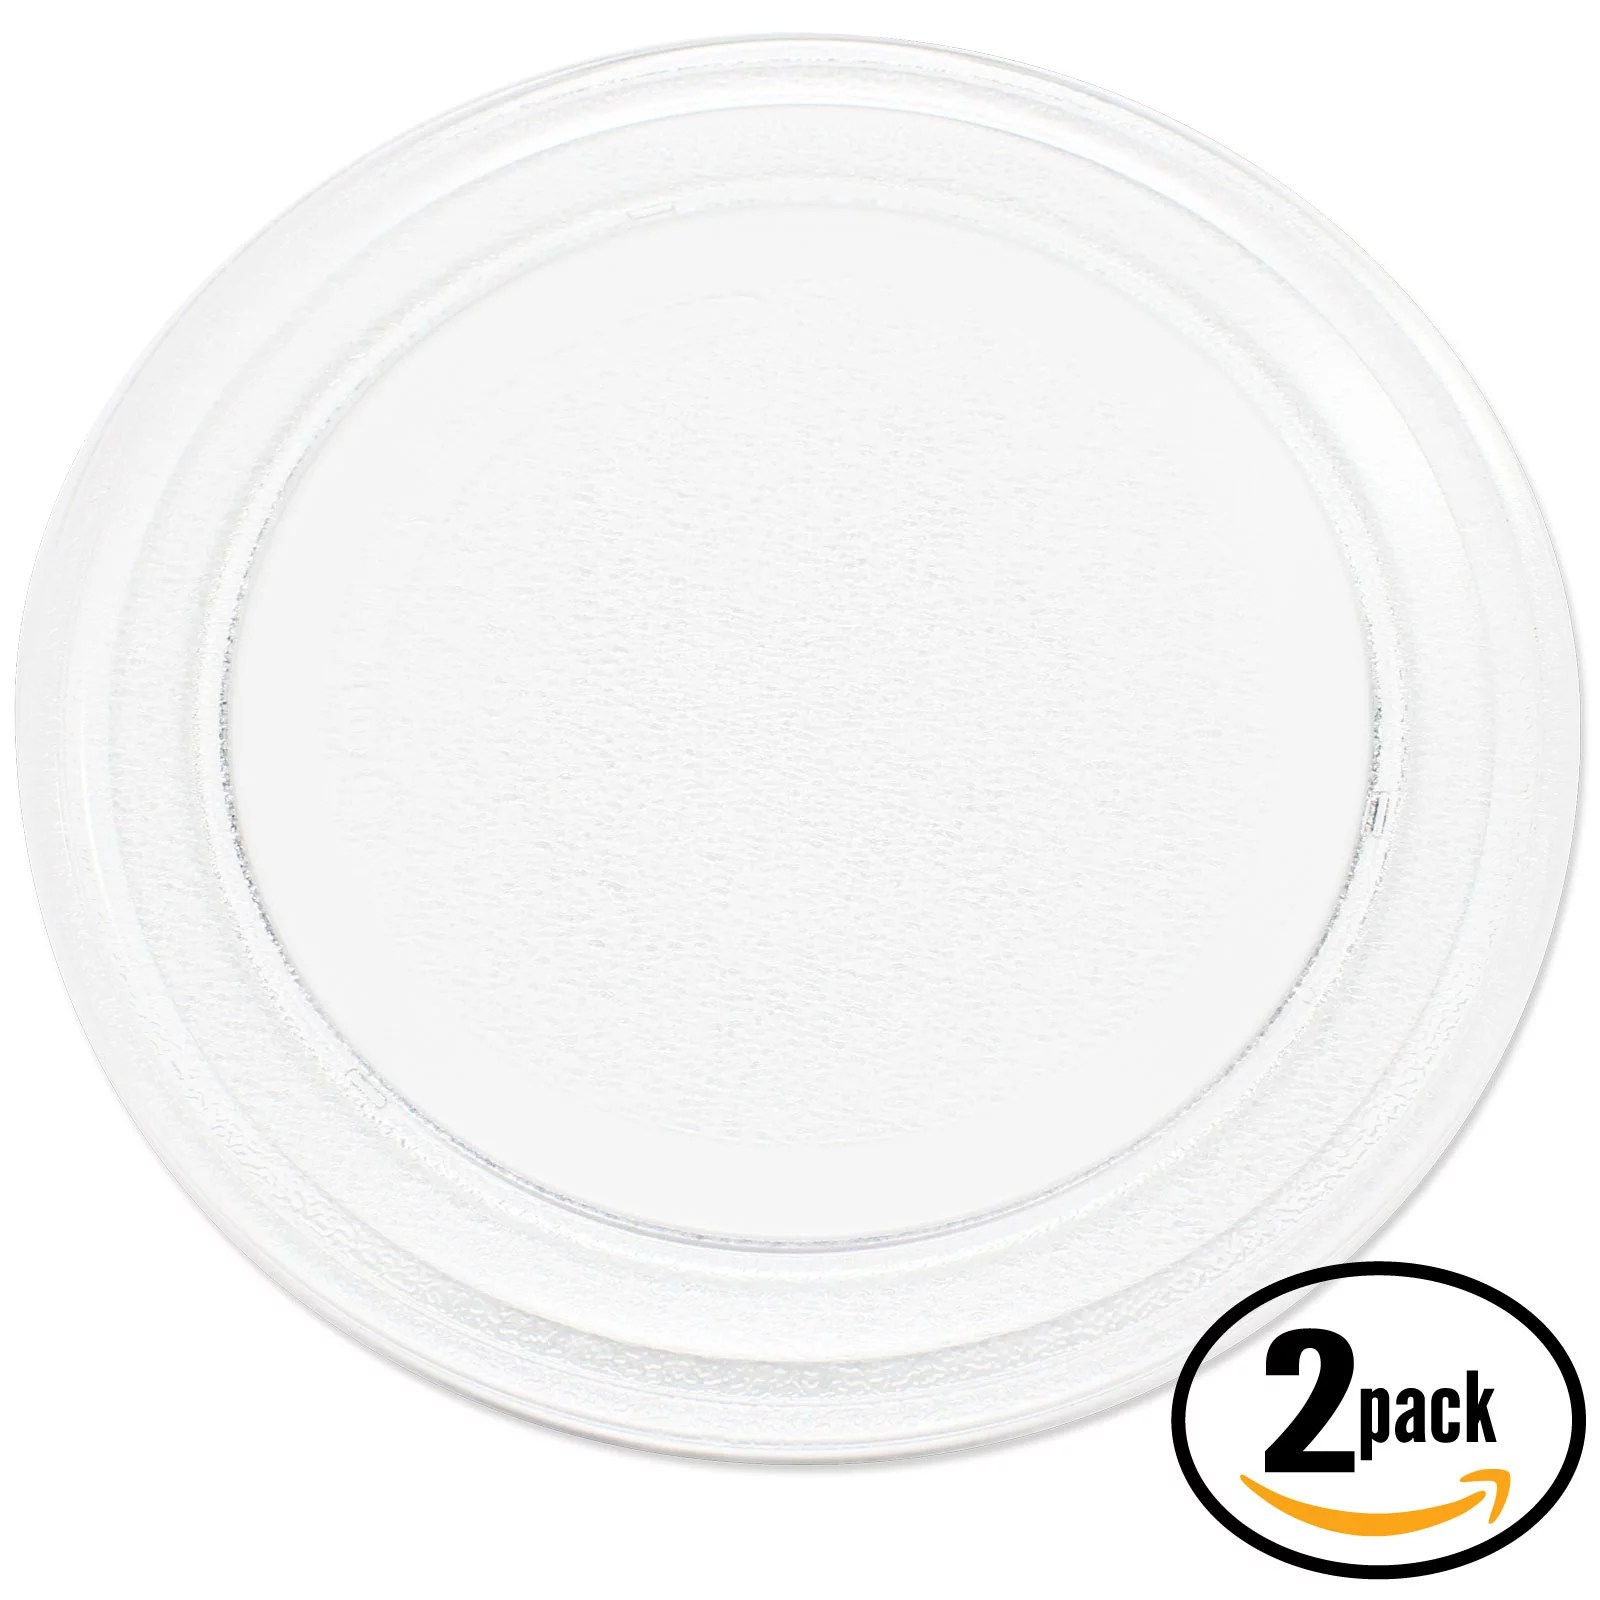 Glass Plate Cover For Microwave 2 Pack Replacement Oster Om0701a8b Microwave Glass Plate Compatible Oster 3390w1a035 Microwave Glass Turntable Tray 9 5 8